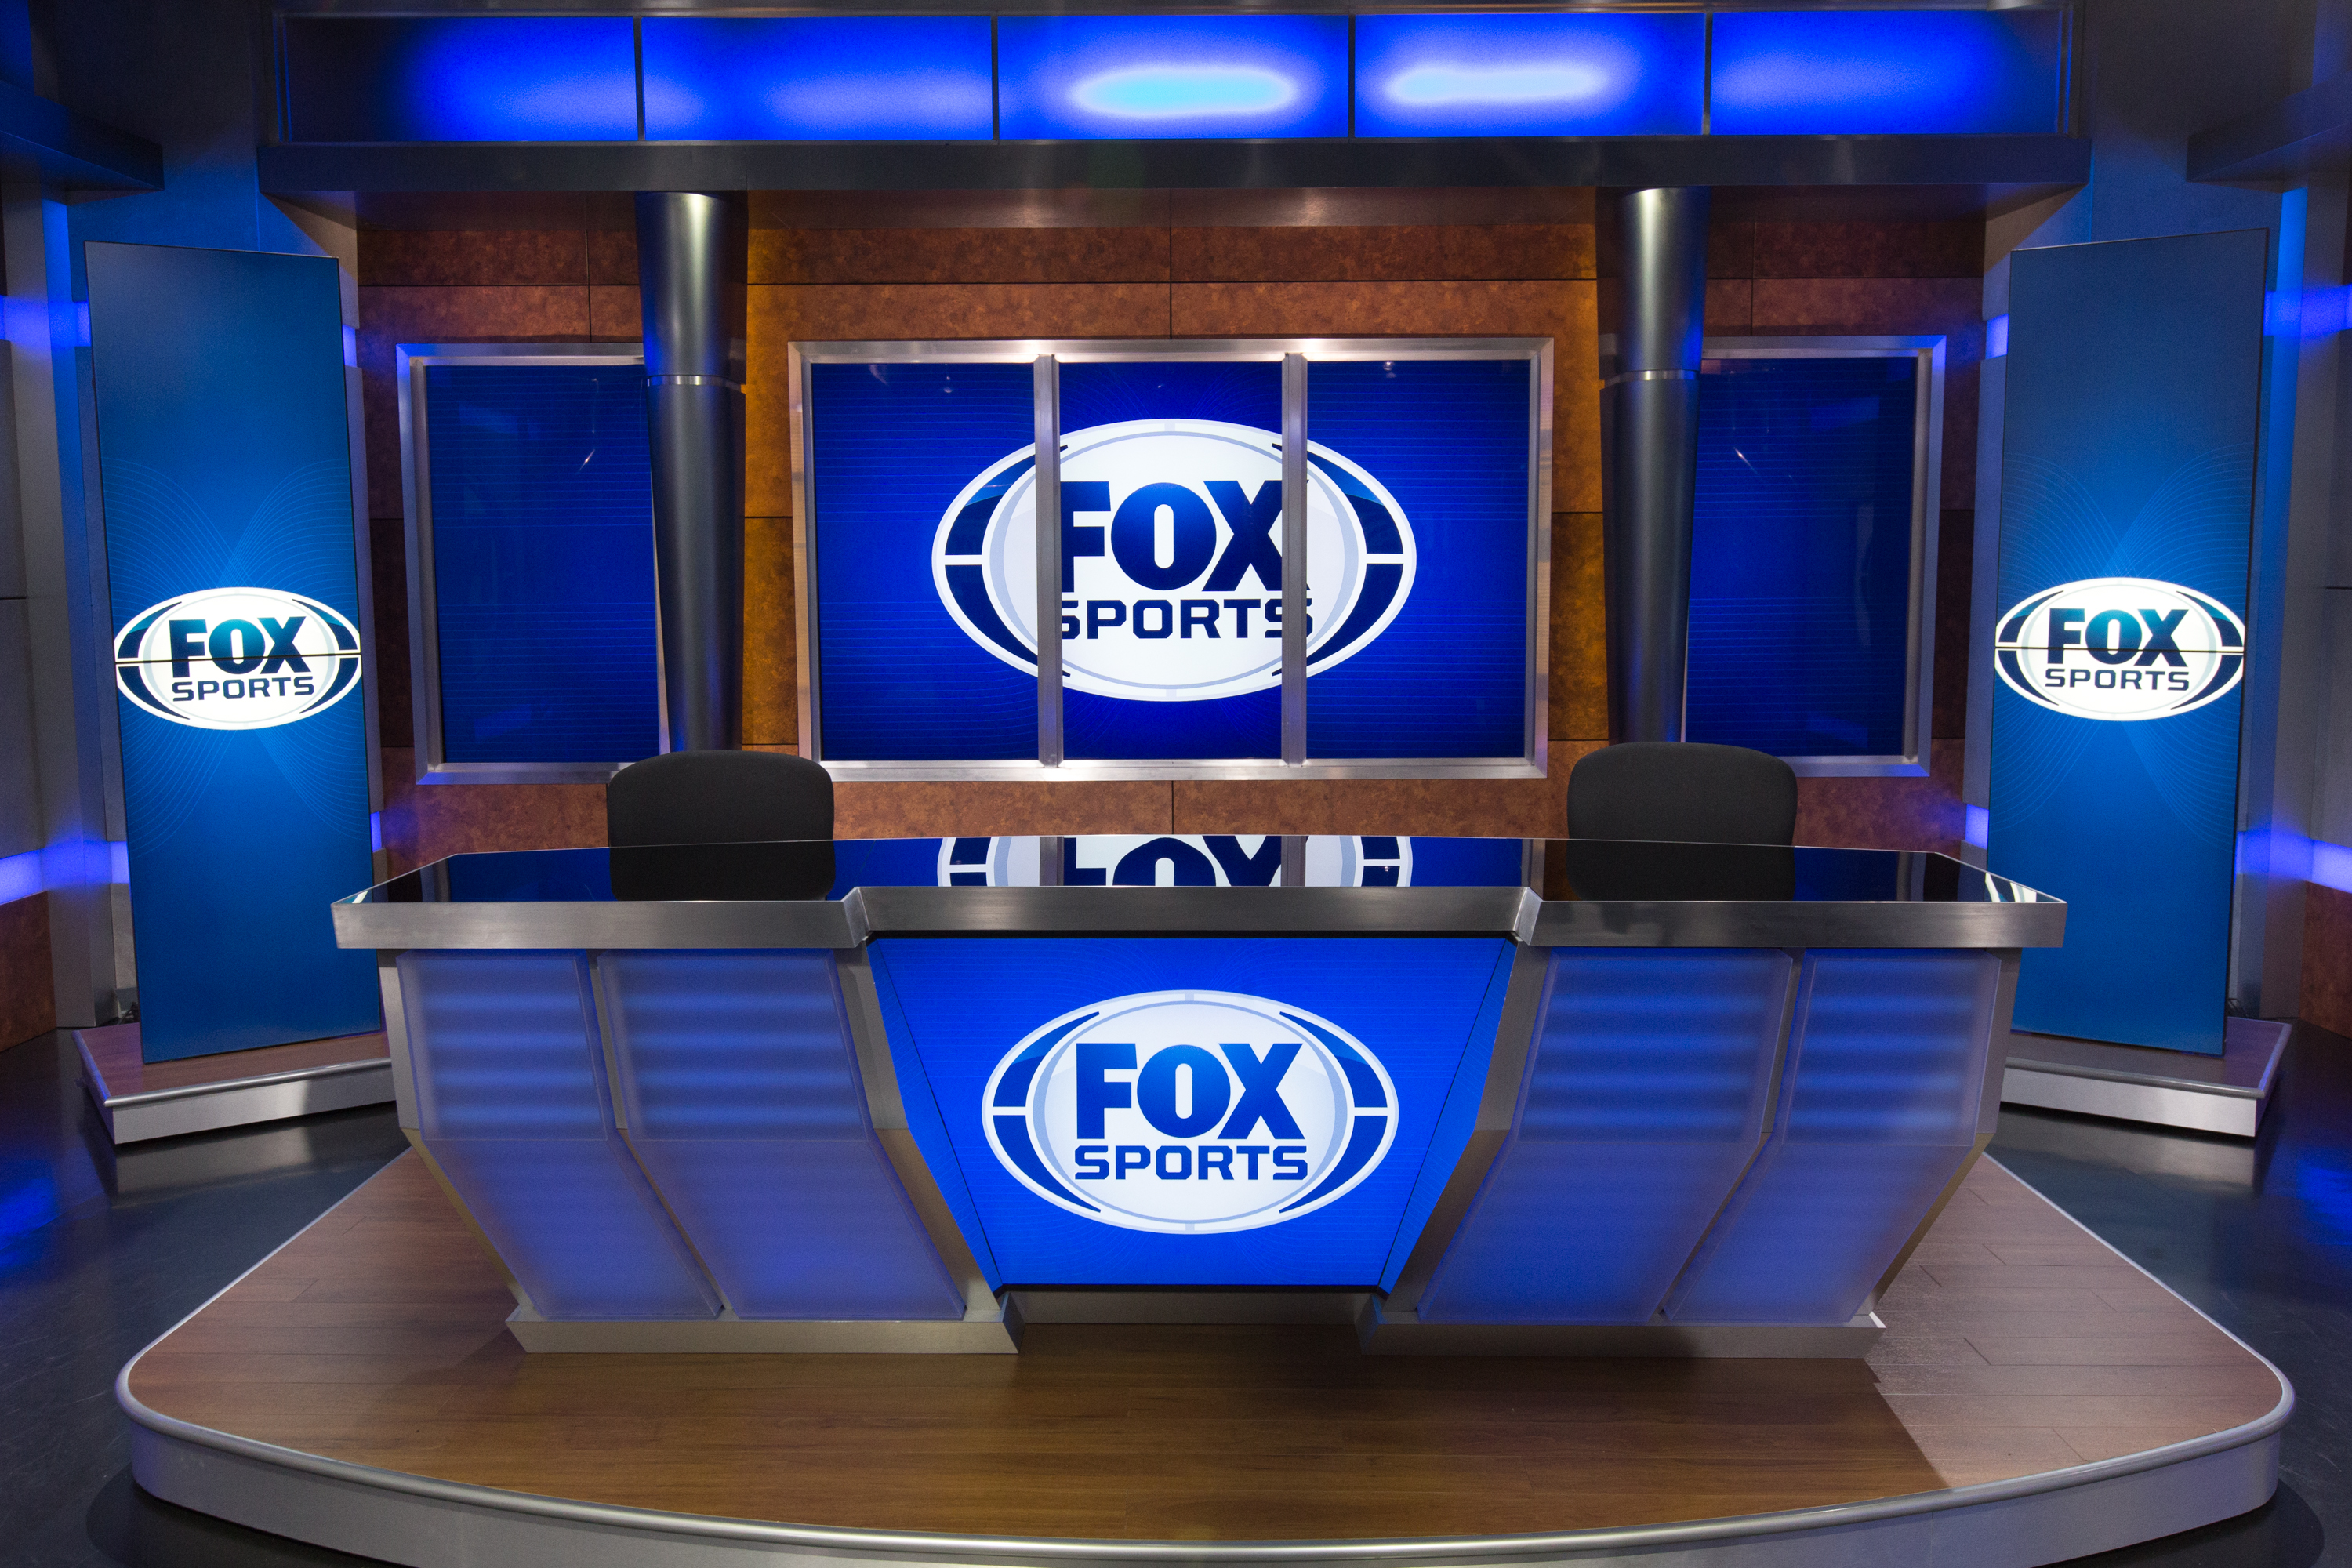 Fox Sports South's new anchor desk features interchangeable LED